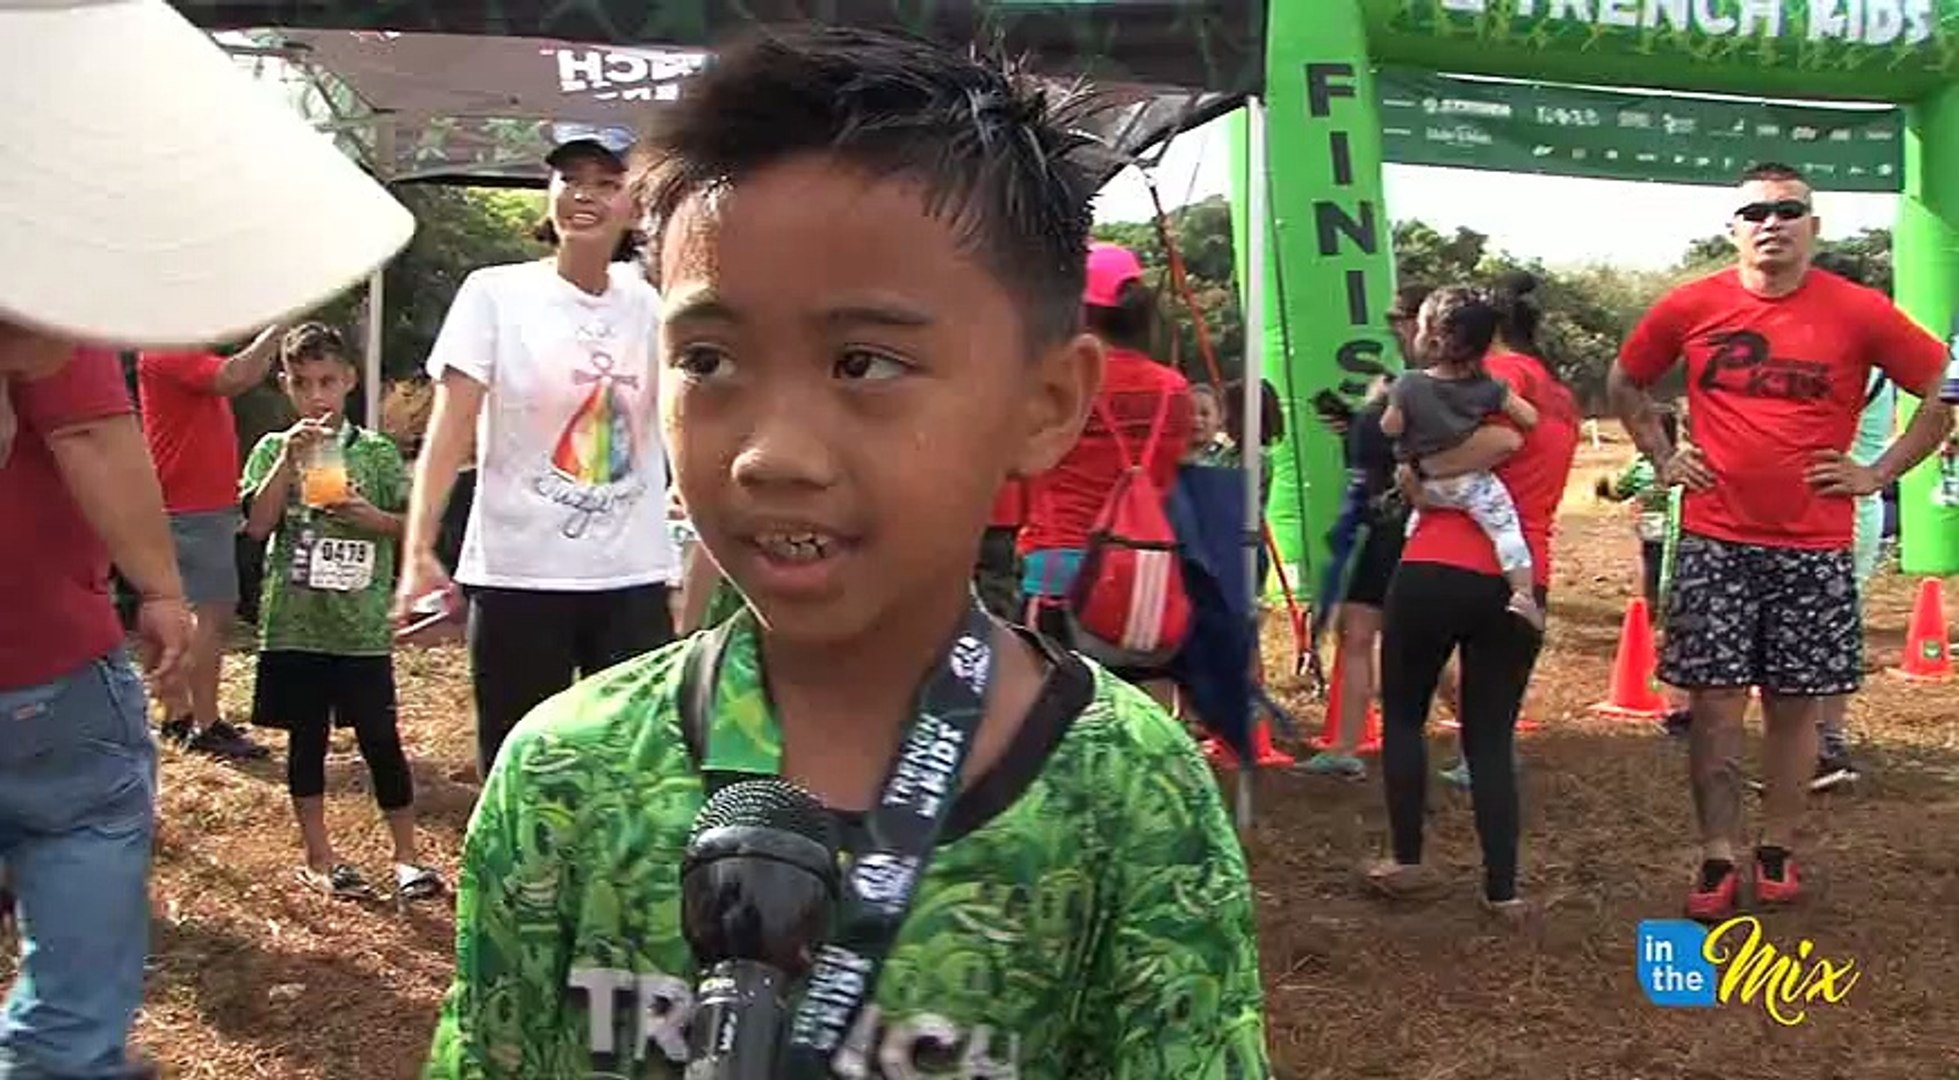 The KUAM Kids did their part to help others, by lacing-up for the 2nd Annual Trench Kids Challenge.